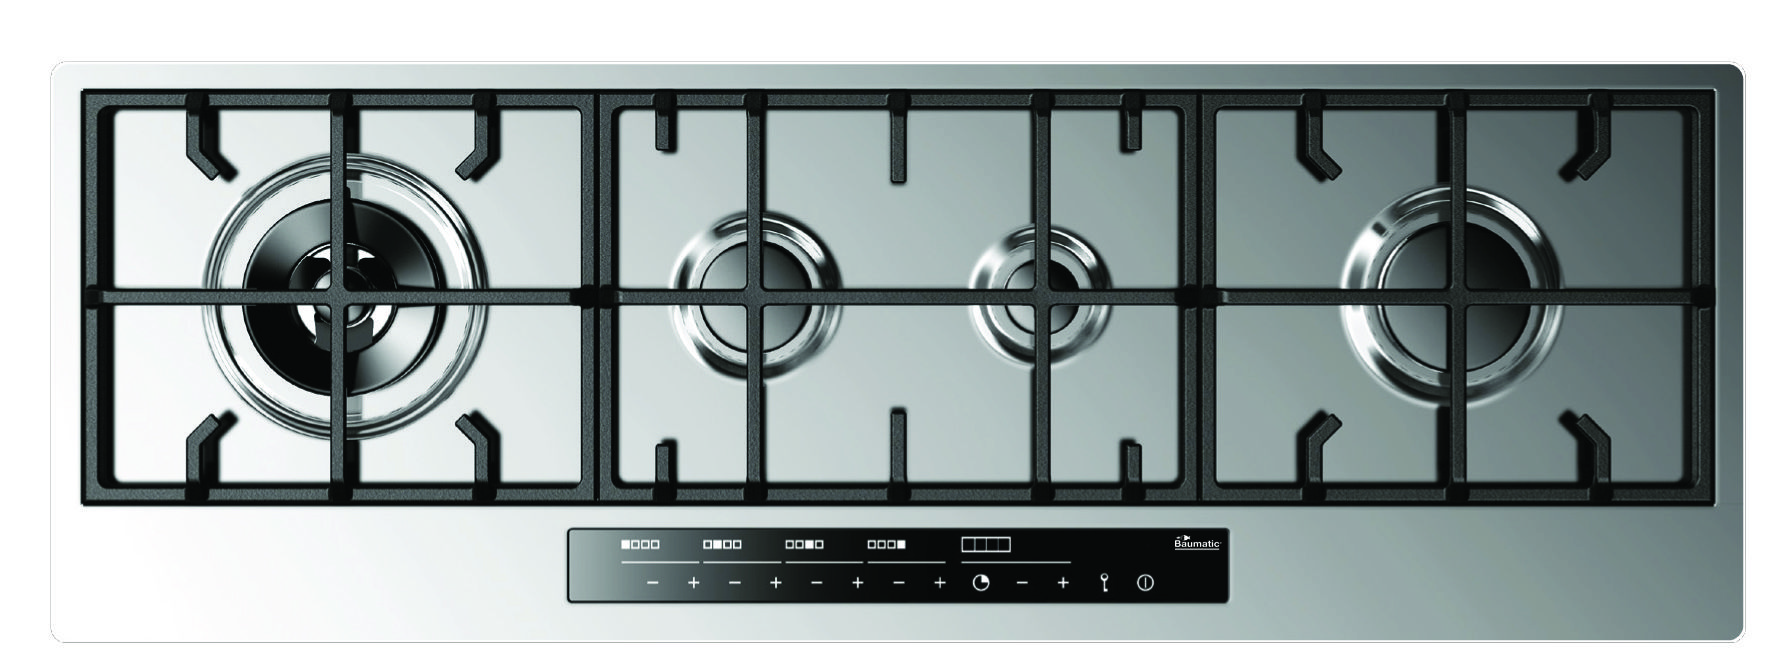 An in-line gas hob could be a good space saving solution.   בית ...